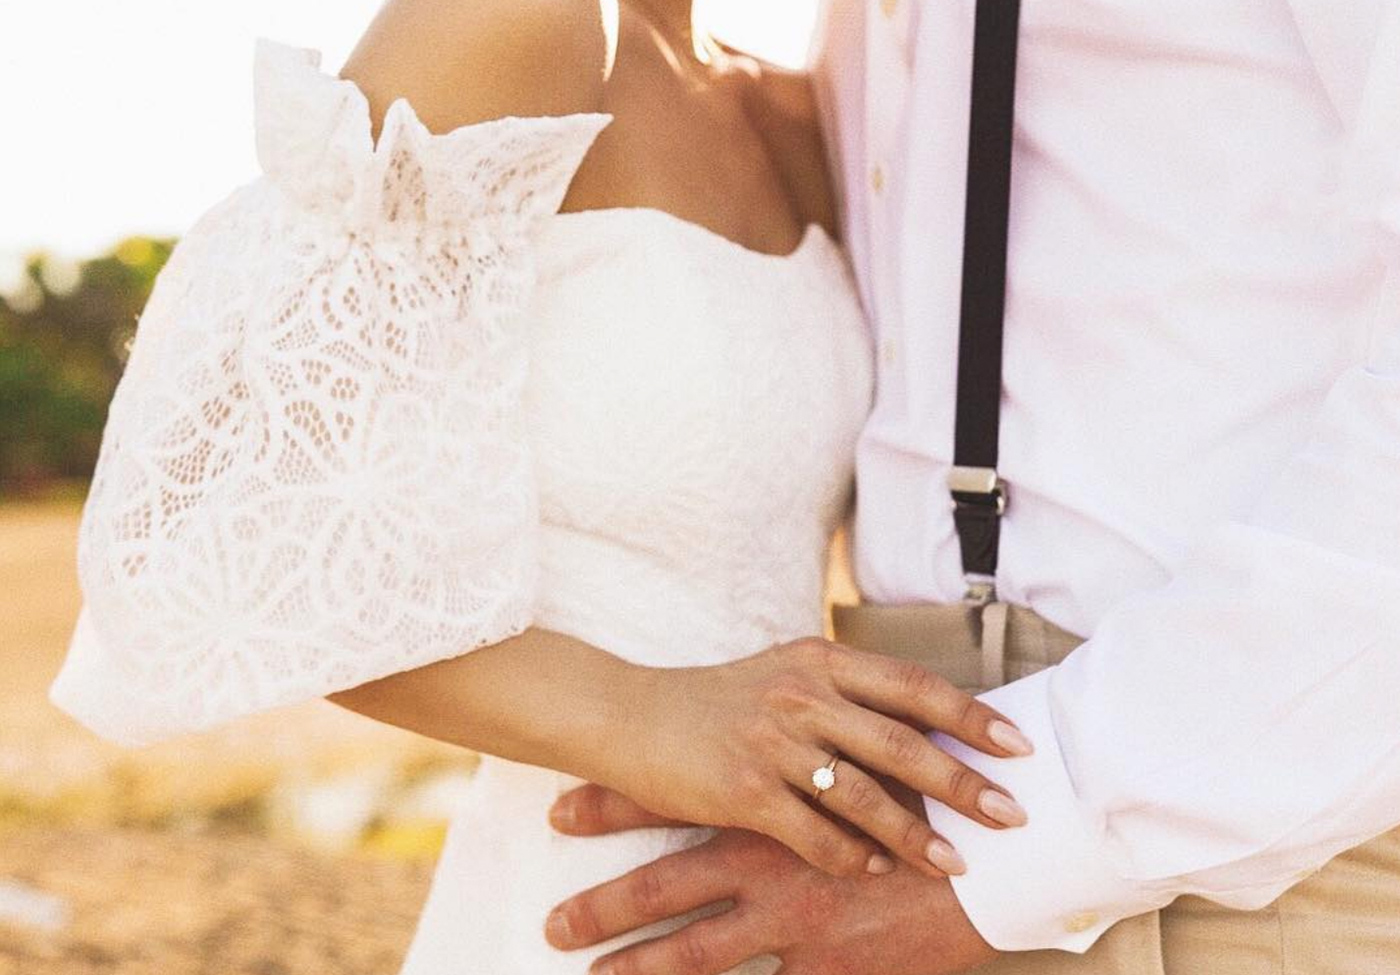 Newlyweds on their wedding day featuring a solitaire Round Brilliant cut engagement ring on the bride.